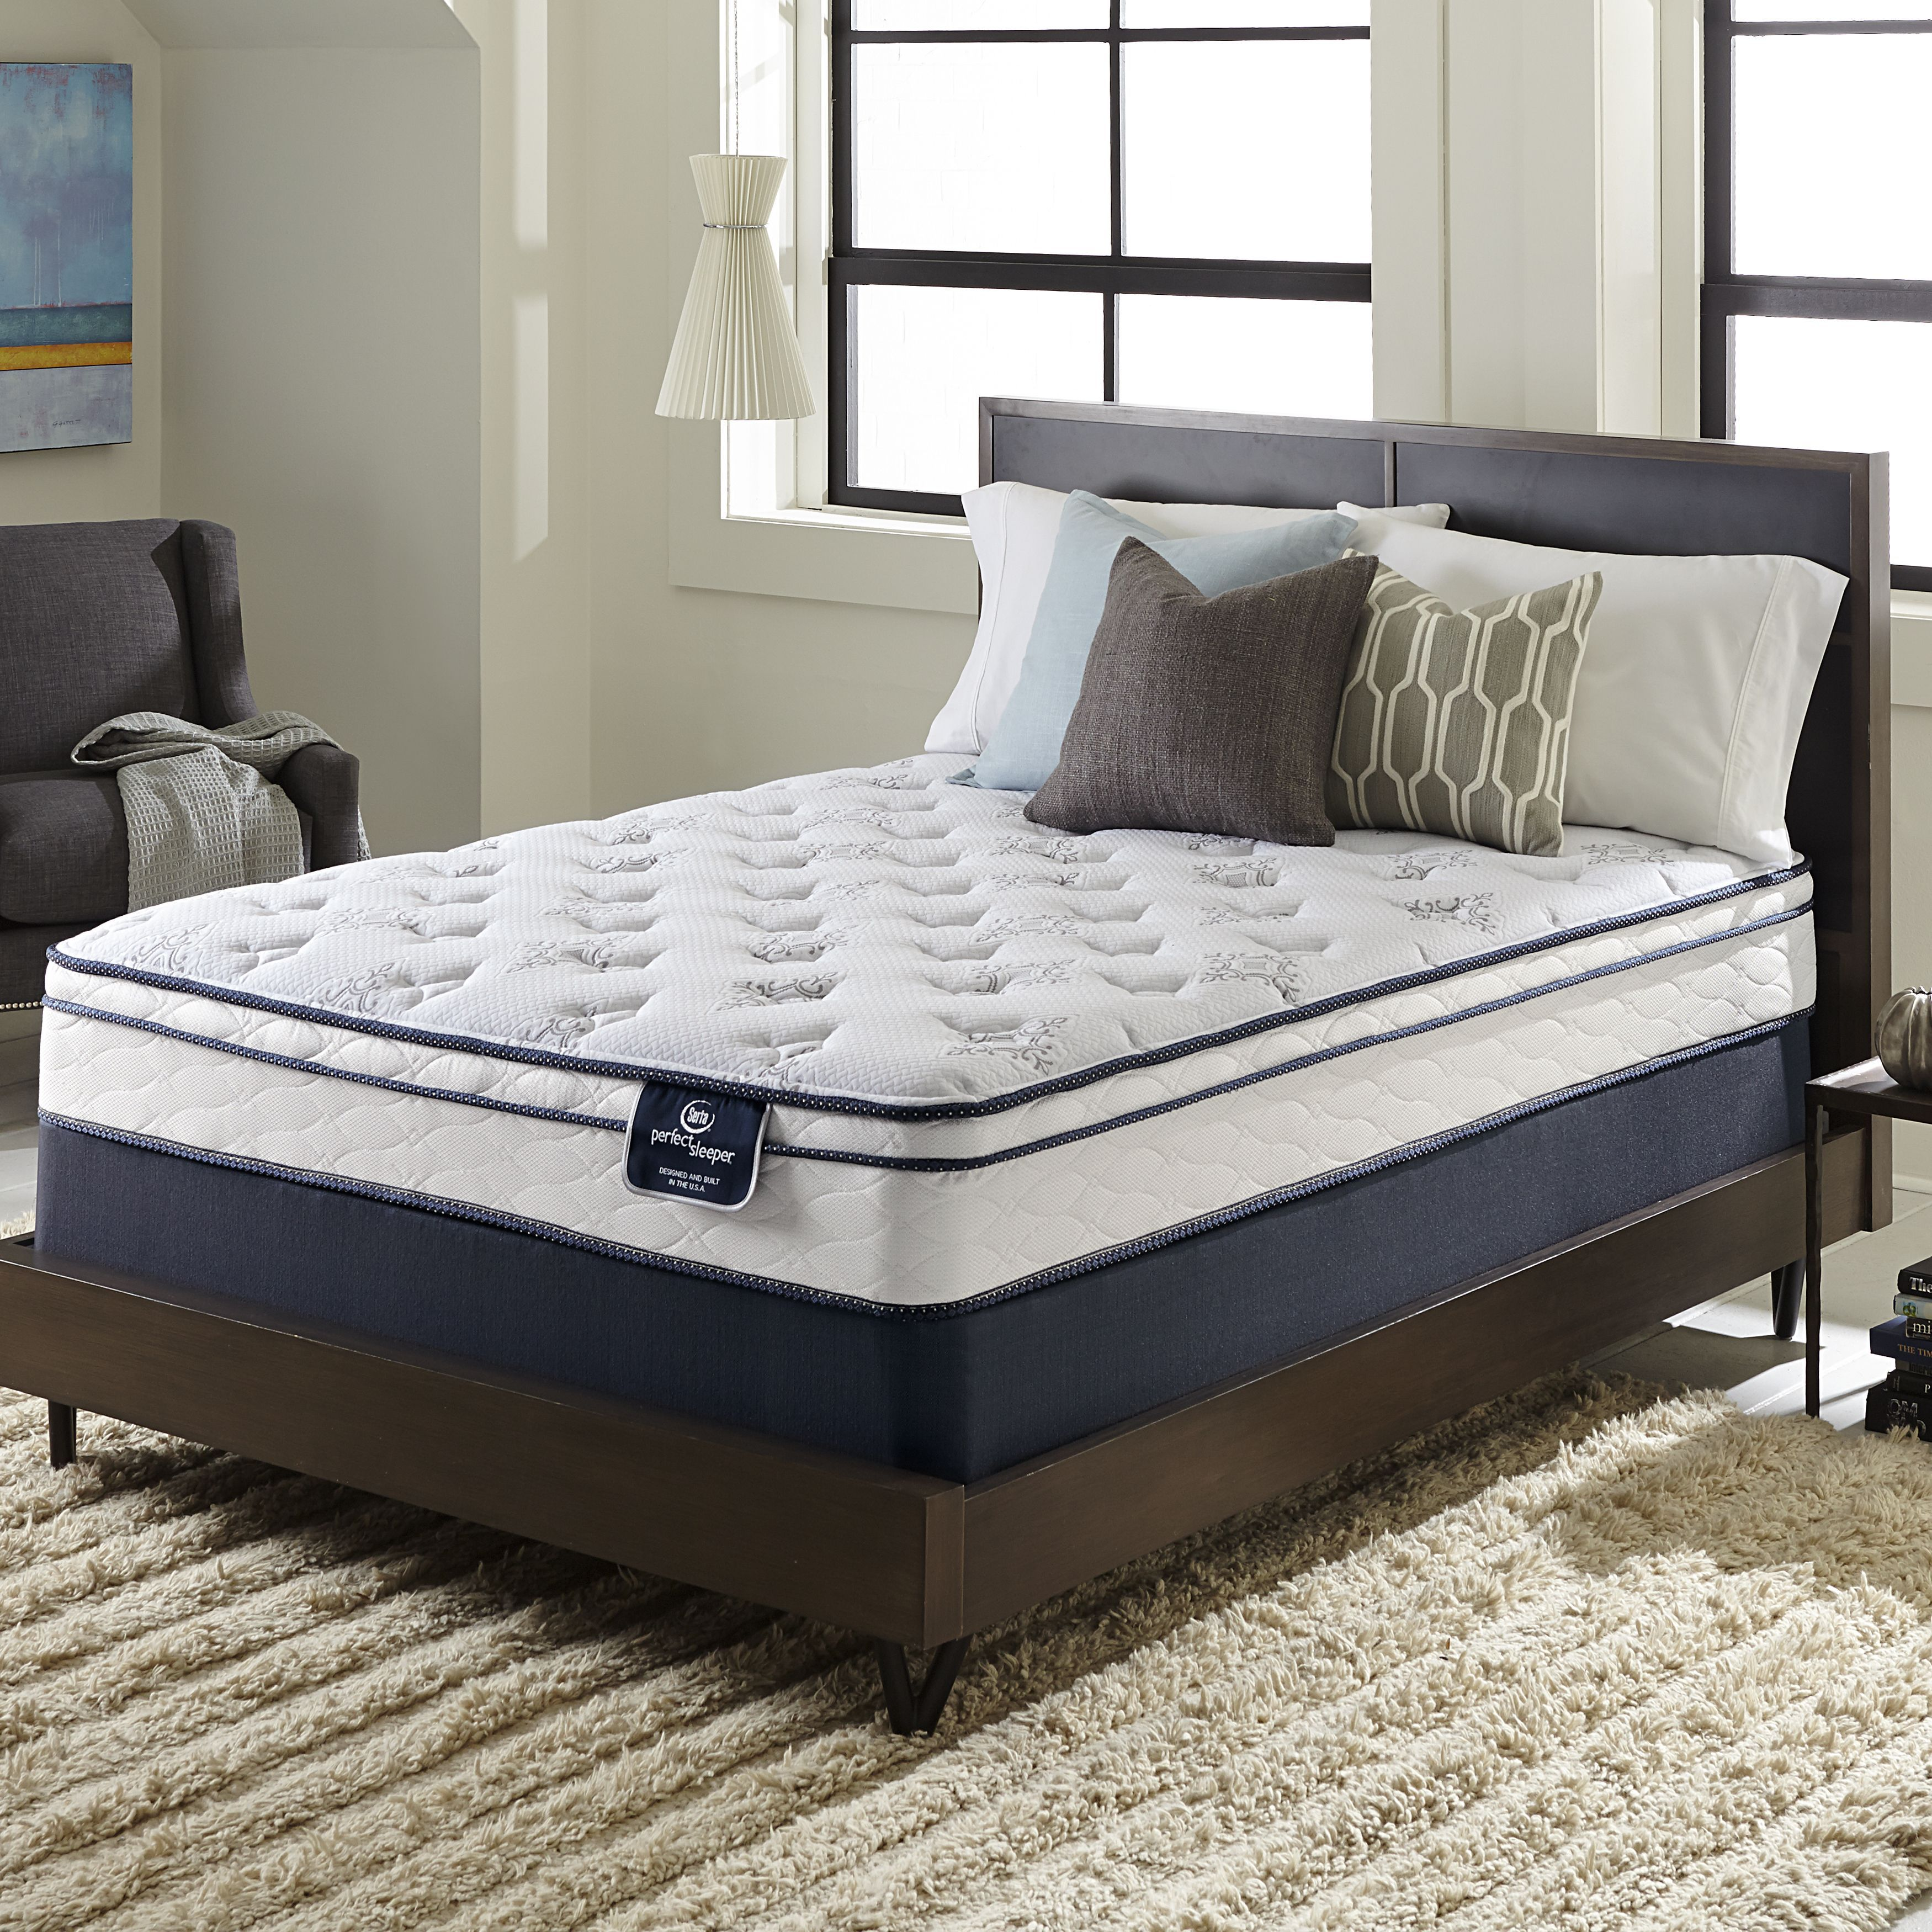 Owned The Serta Perfect Sleeper Has Been Named A Consumers Digest Best In Recognition